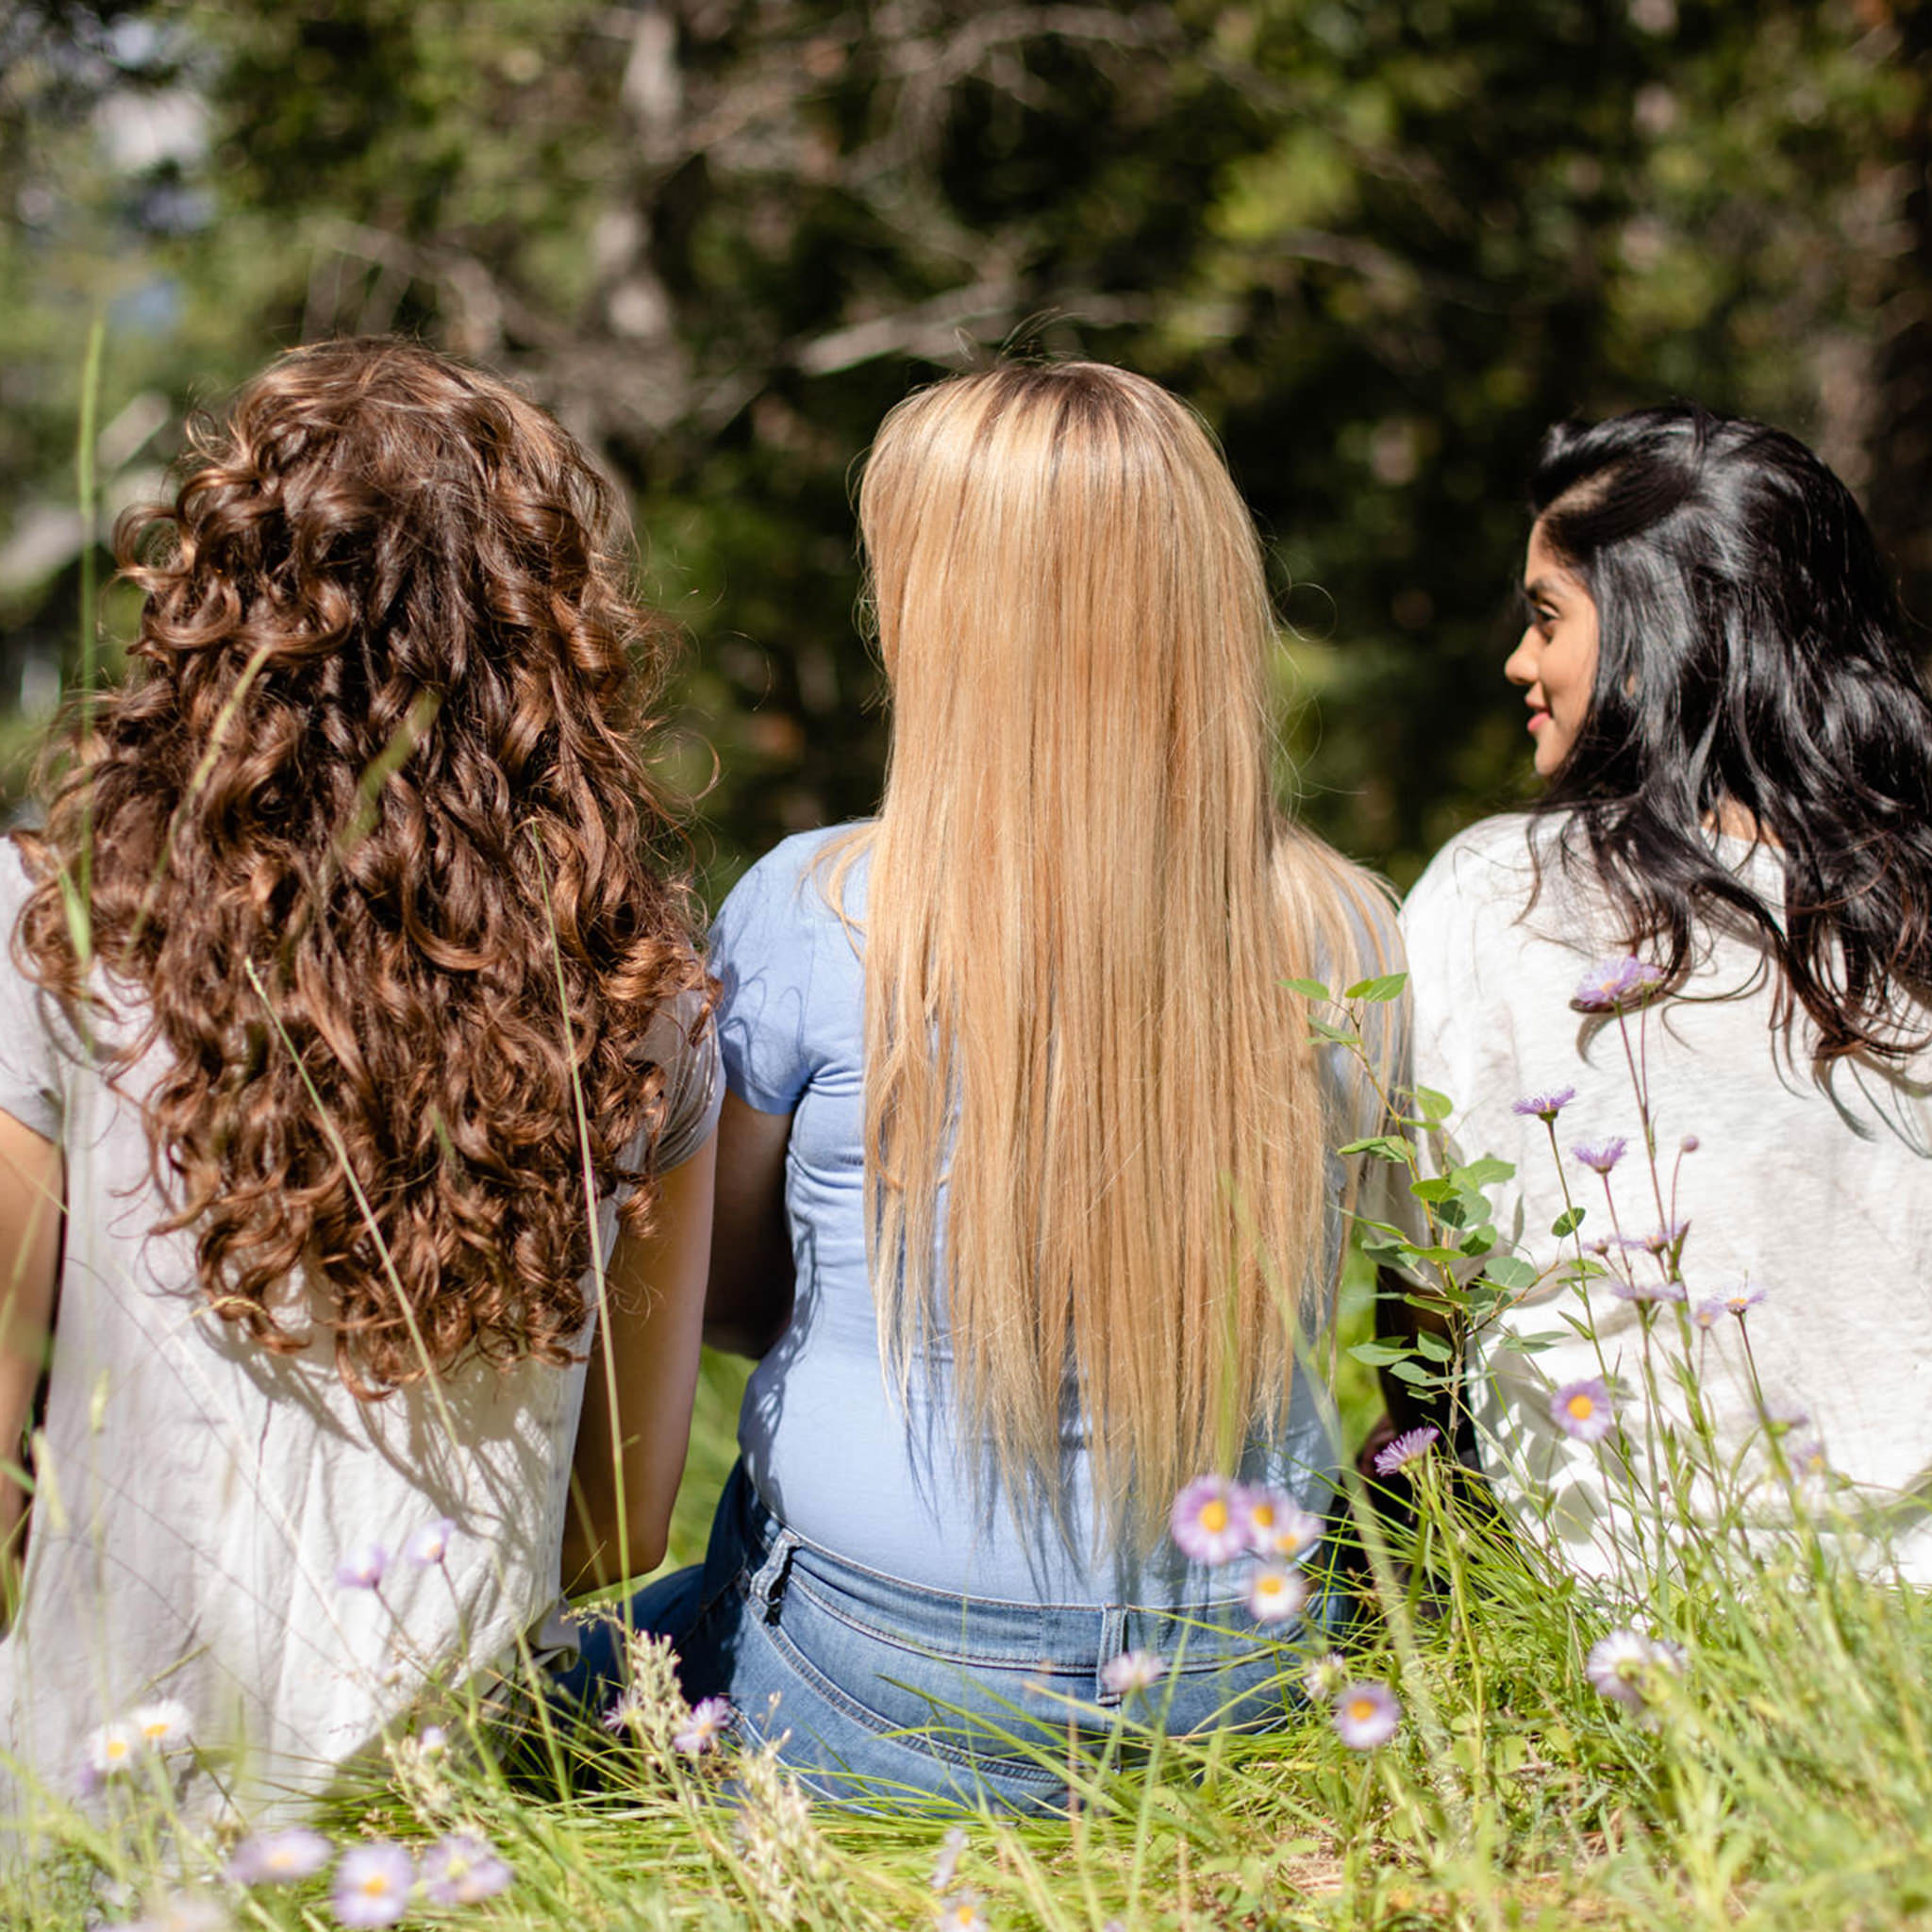 three women sitting with their backs to the camera, with shiny hair.